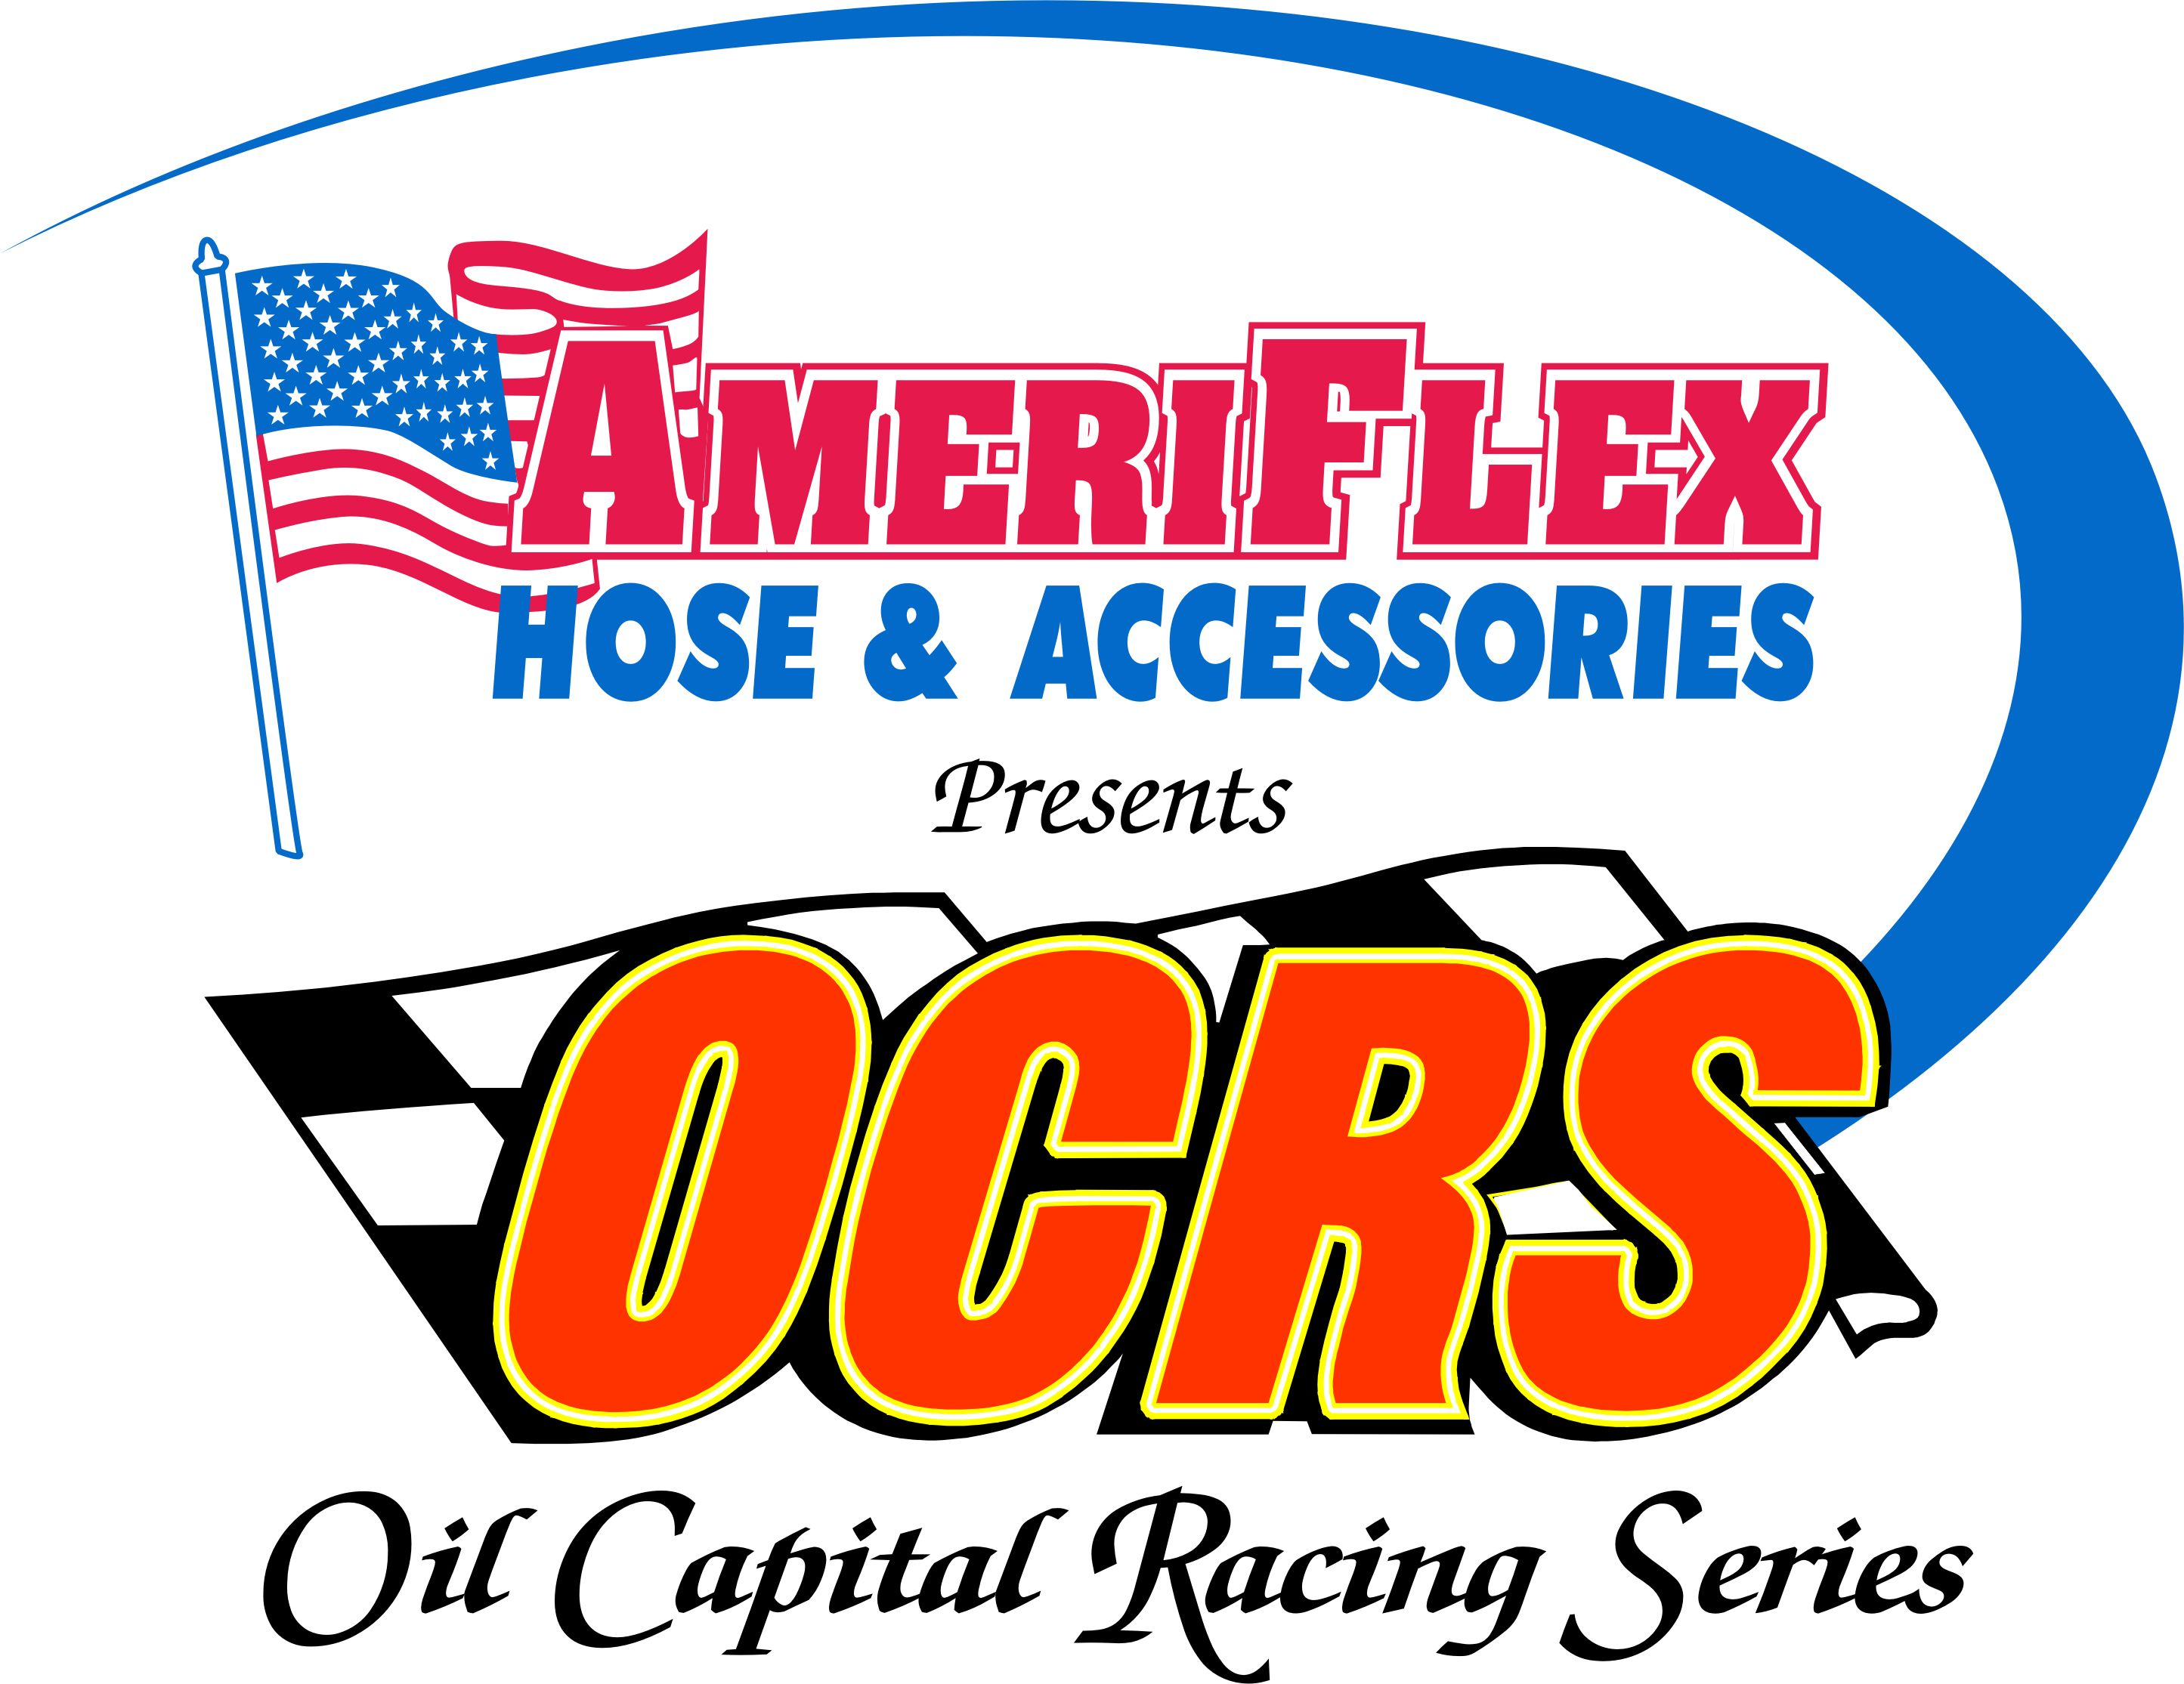 AmeriFlex Hose & Accessories Oil Capital Racing Series